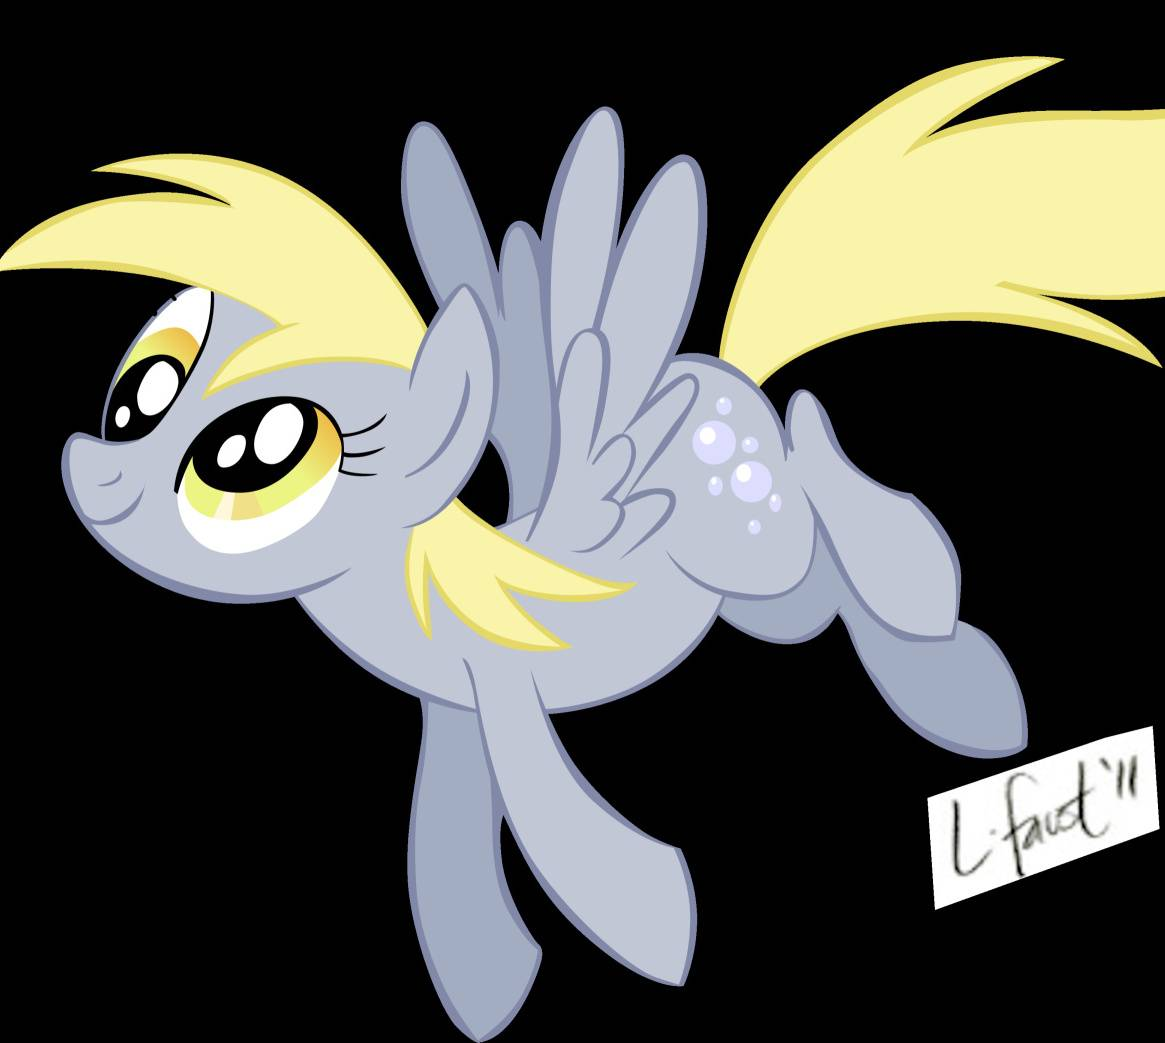 Derpy Hooves Wallpaper By Derpyhooves